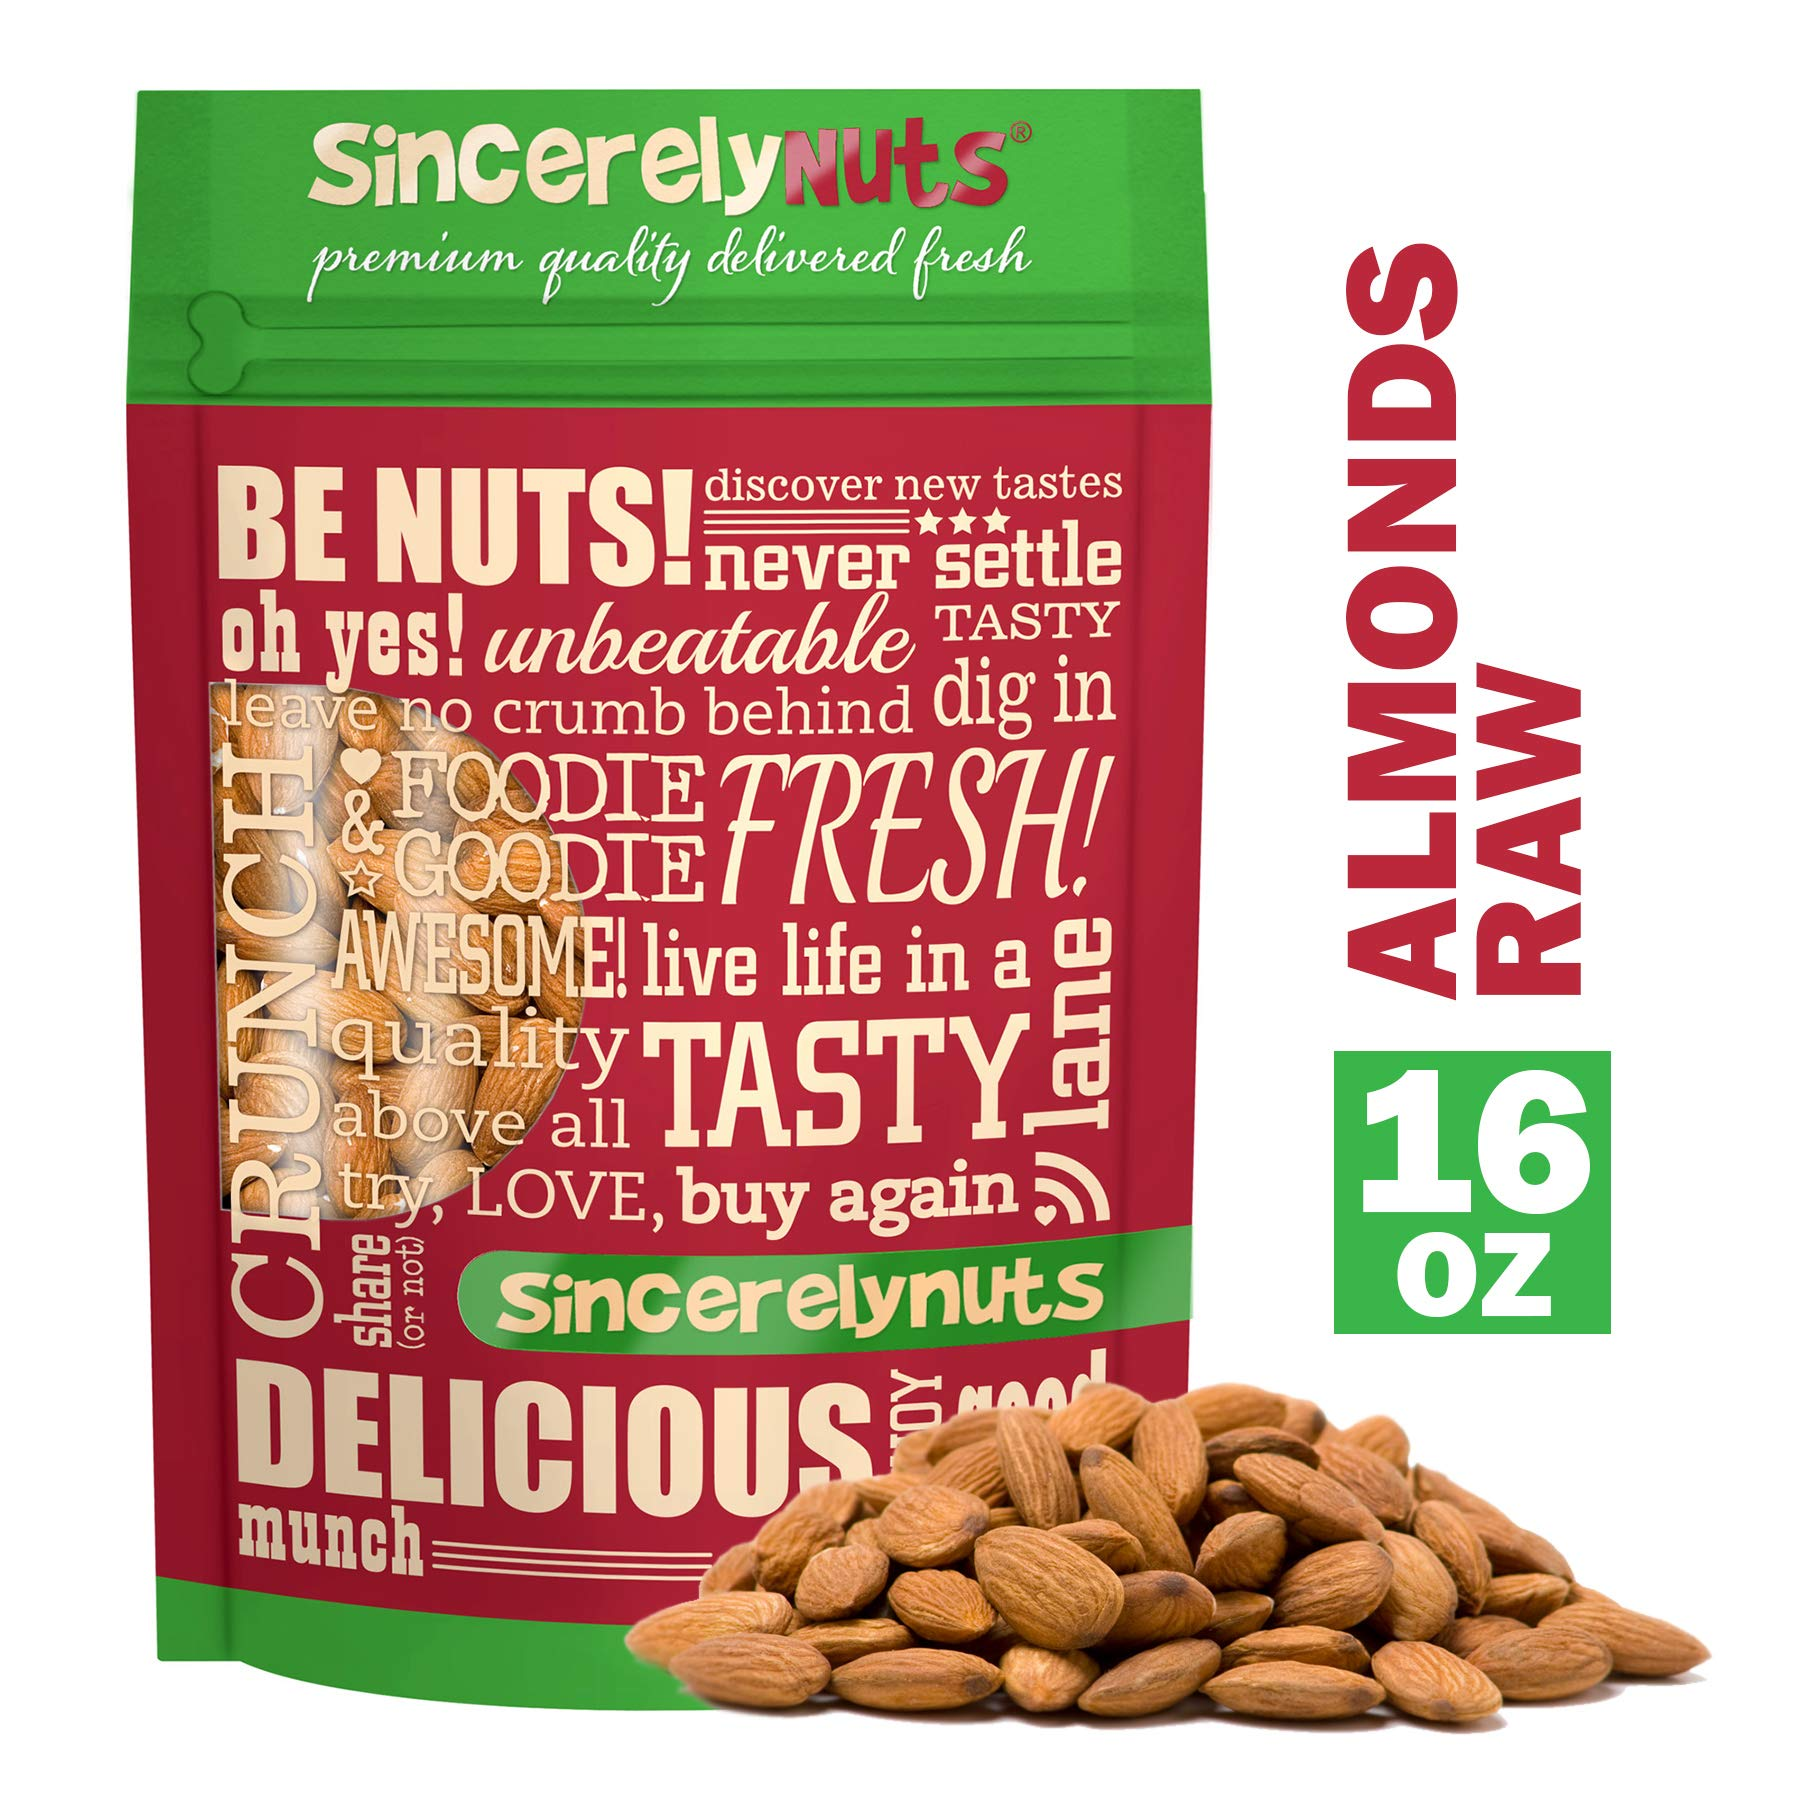 Sincerely Nuts - Natural Whole Raw Almonds Unsalted No Shell | 1 Lb. Bag | Low Calorie, Low Sodium, Kosher, Vegan, Gluten Free | Gourmet Kosher Snack Food | Source of Fiber, Protein, Nutrients